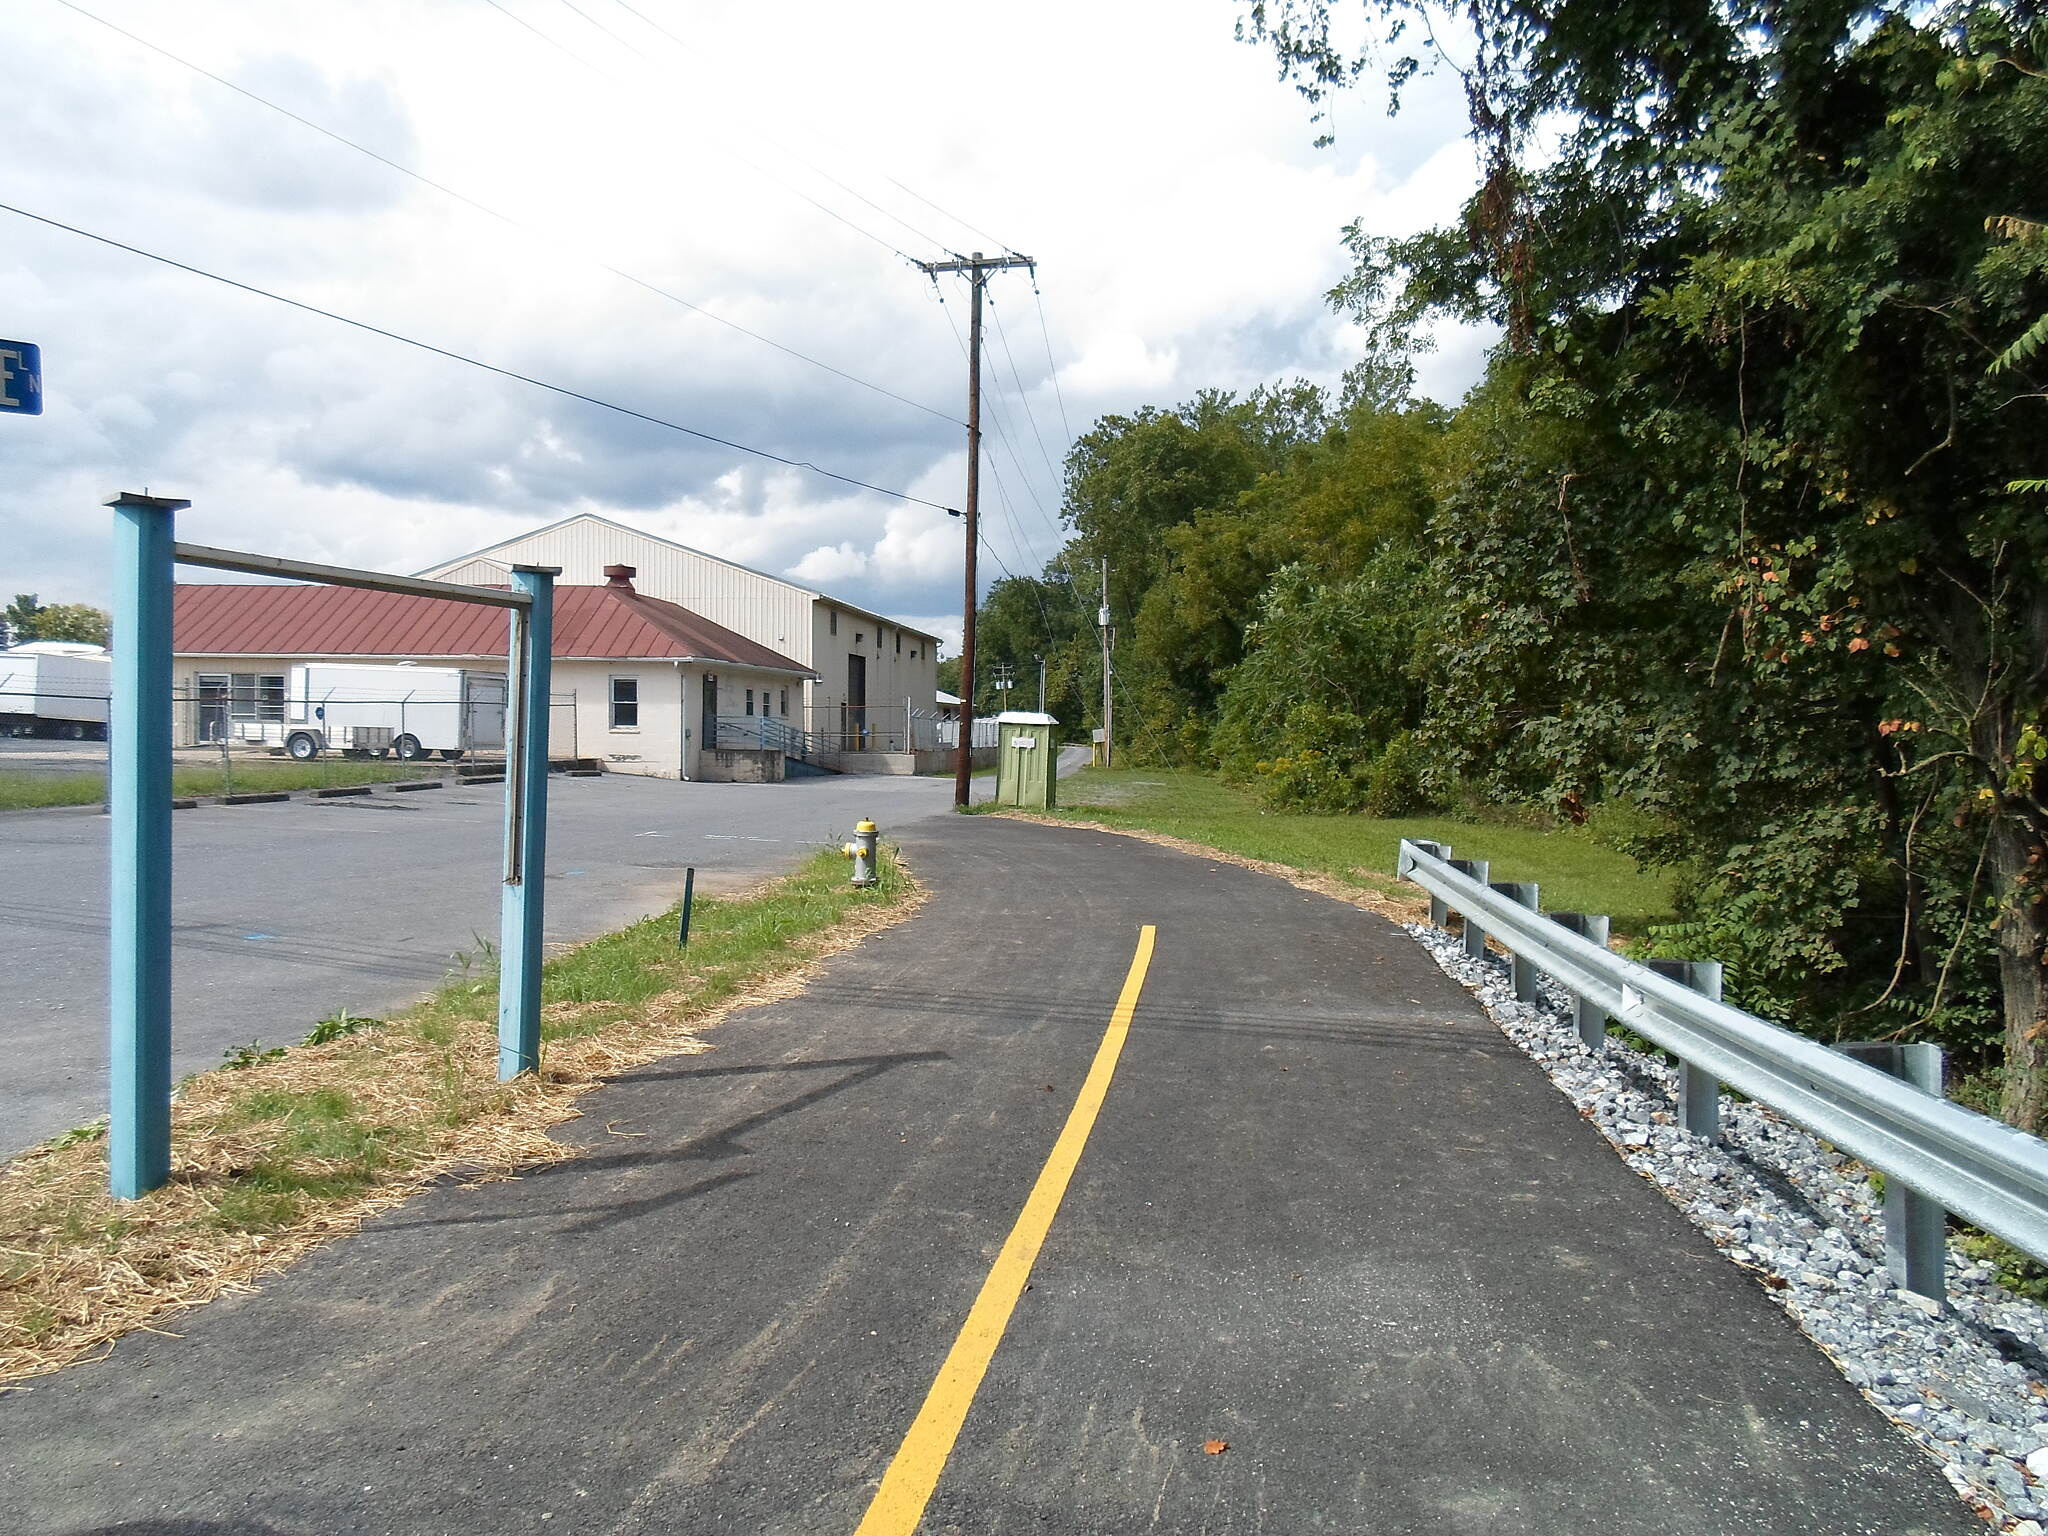 Lebanon Valley Rail-Trail Lebanon Valley Rail Trail The first segment of the trail north of Lebanon opened in Jonestown last summer. Currently isolated from the rest of the greenway, this portion of the trail will eventually be extended south to Lebanon and north to Lickdale. Taken Sept. 2016.